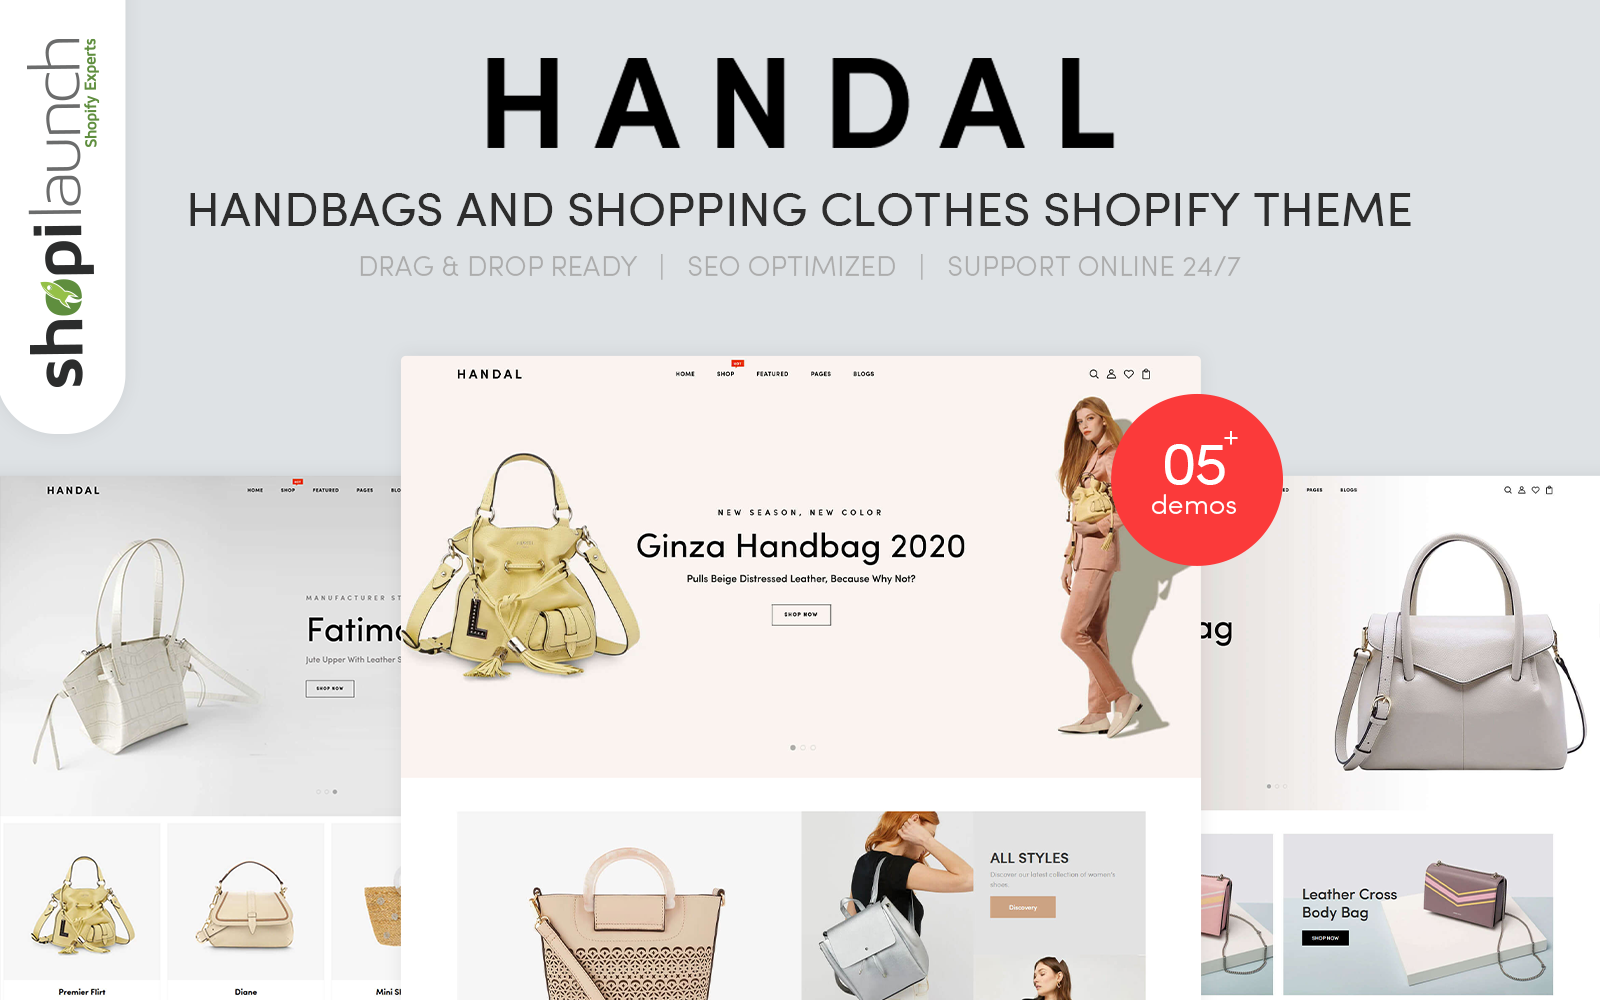 Handal - Handbags & Shopping Clothes Shopify Theme